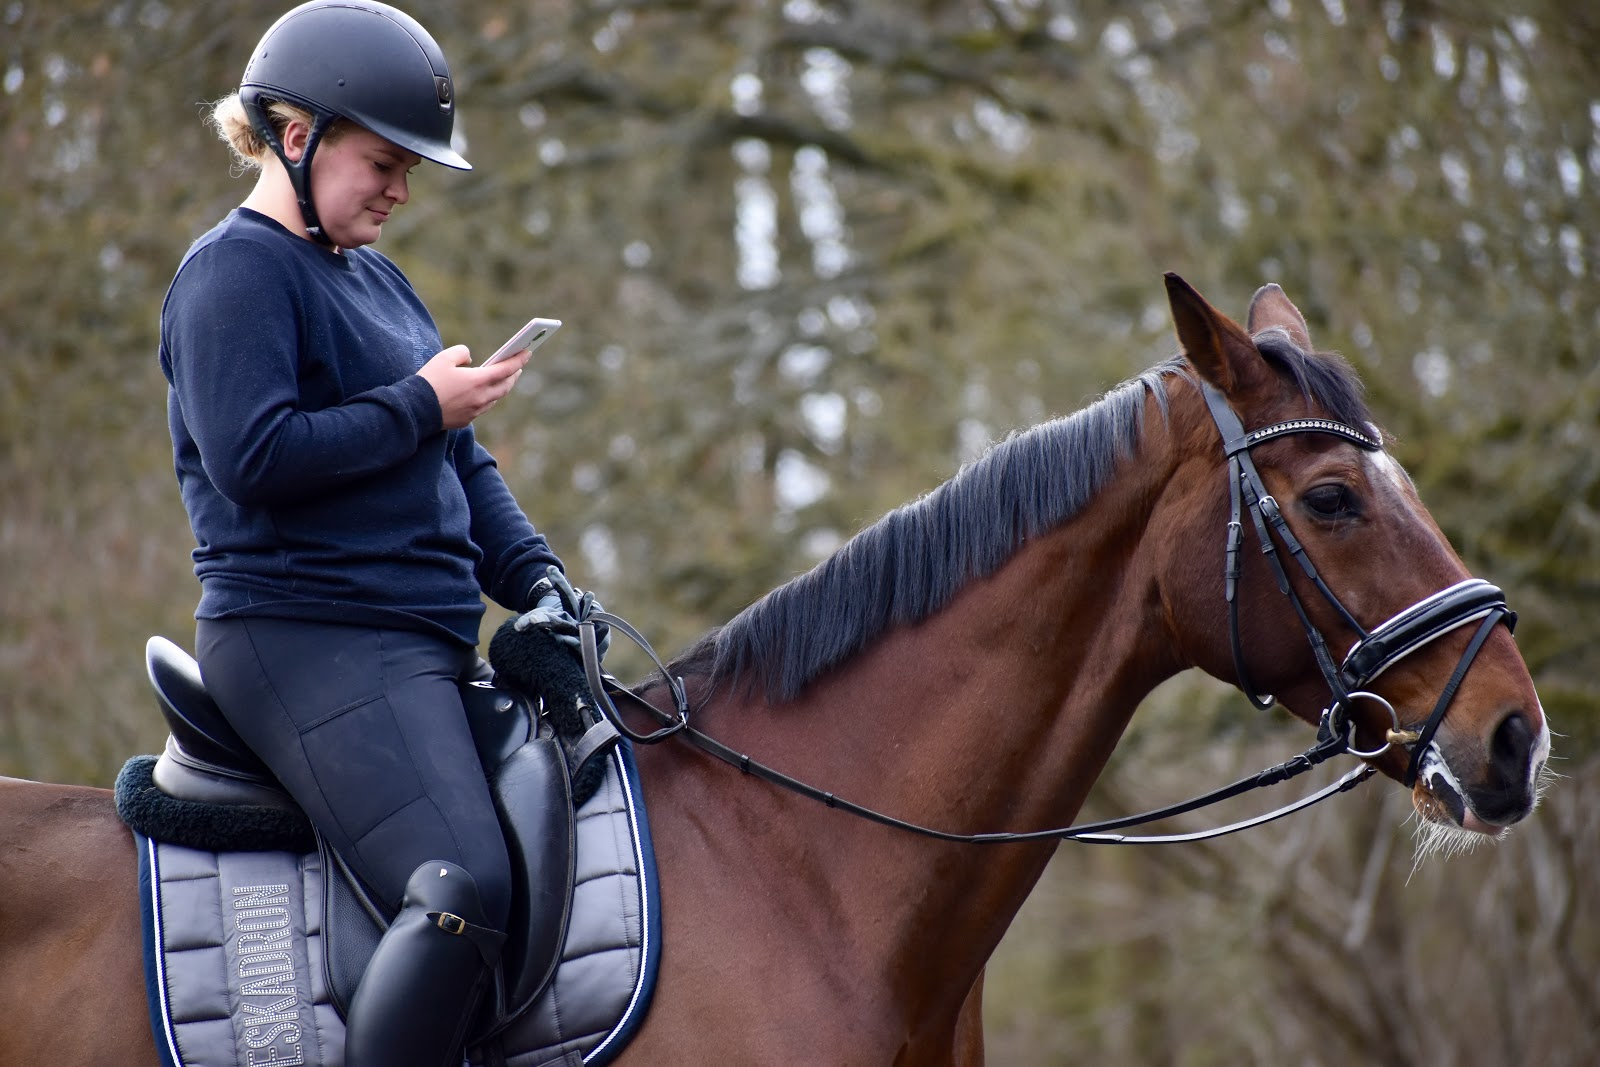 Roosa's Horsey Life: Equilab app review